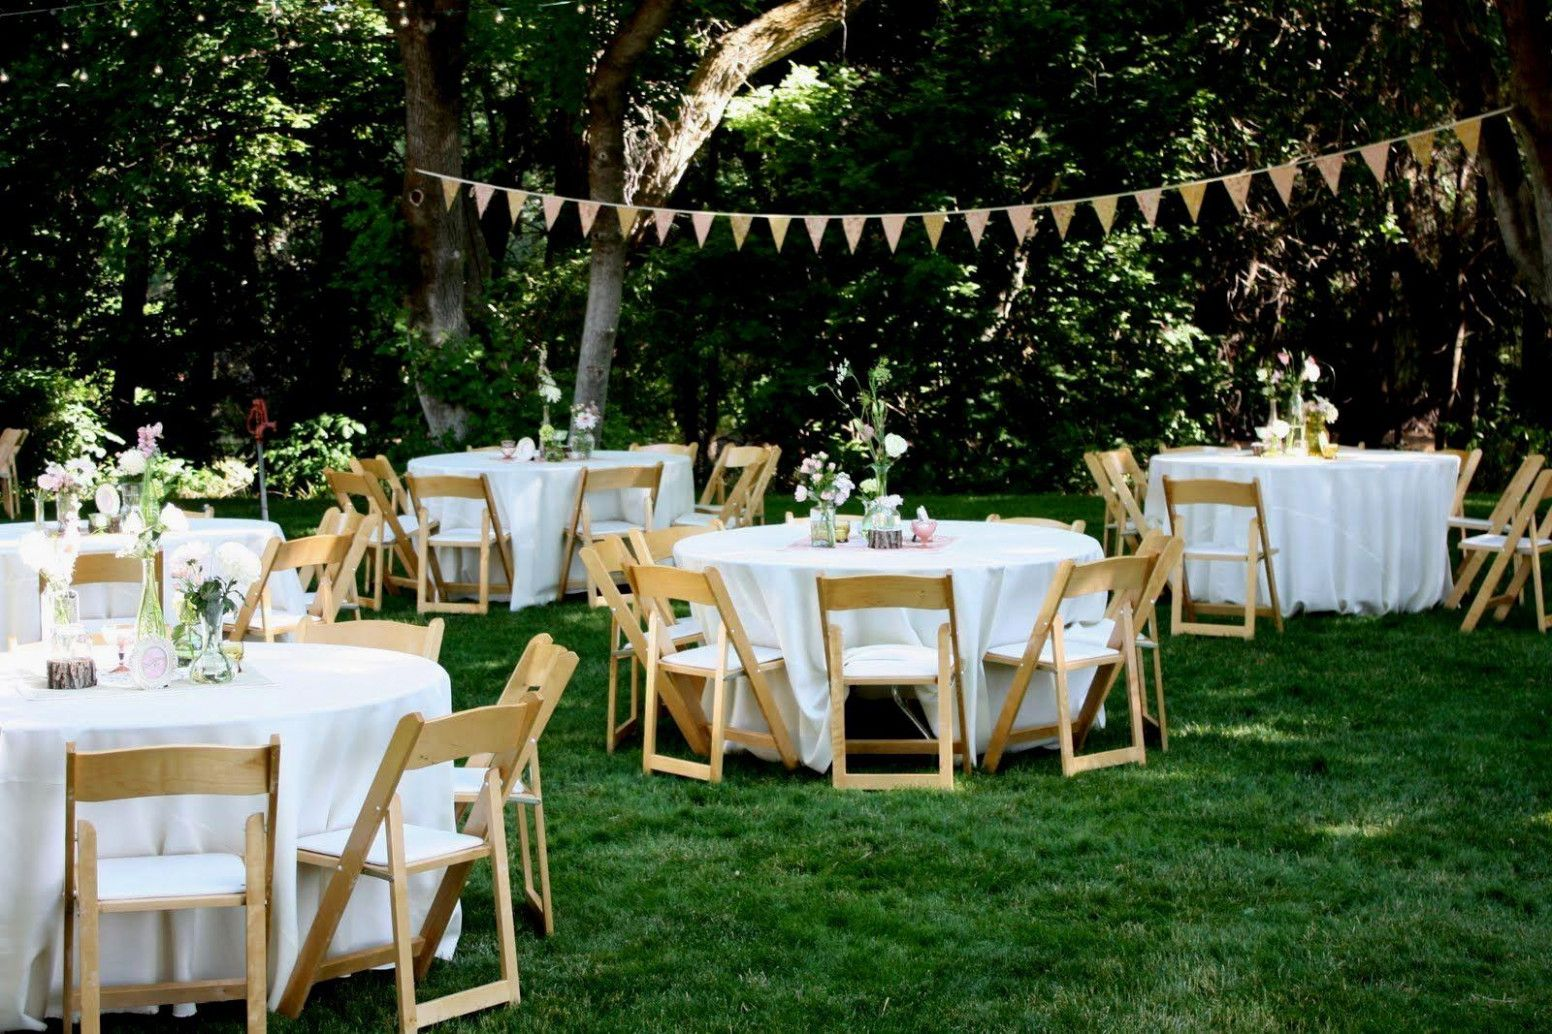 Casual Backyard Wedding At Home | Backyard bbq wedding ...